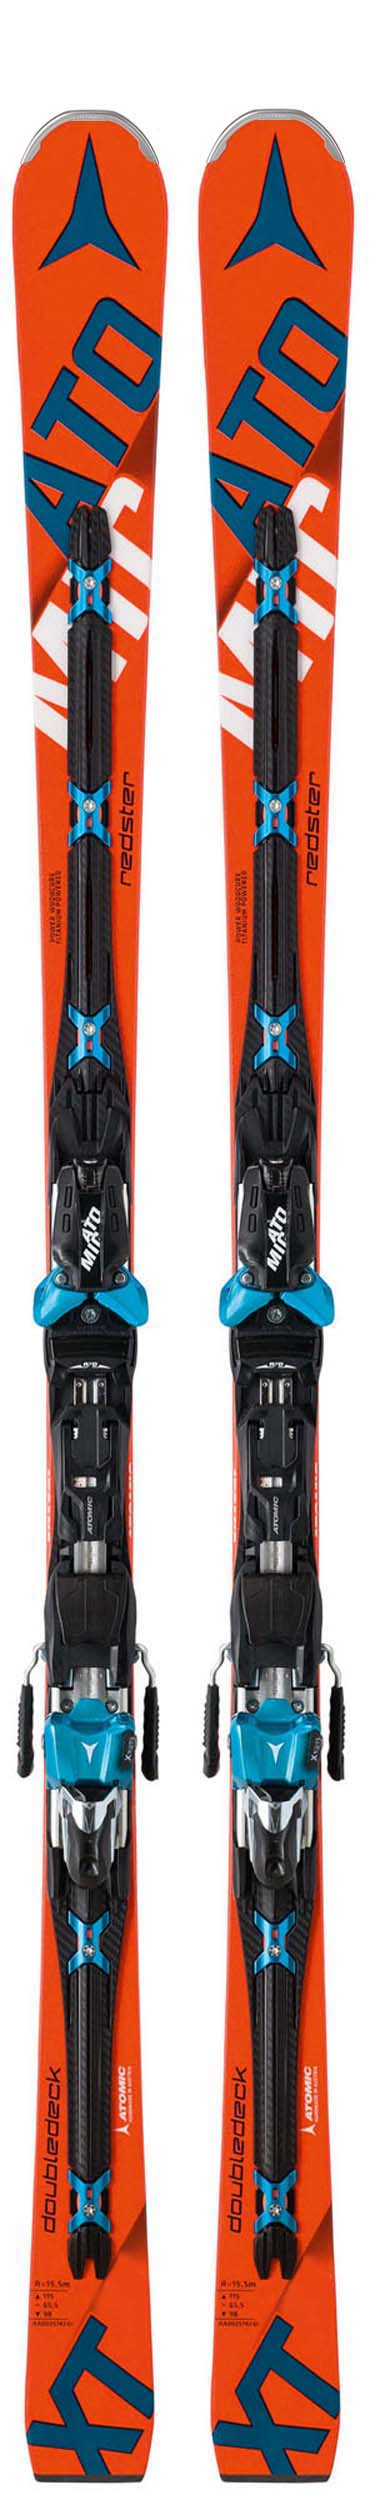 Atomic 2017 Redster D2 3.0 XT Skis w/TL 14 Bindings NEW !! 182cm